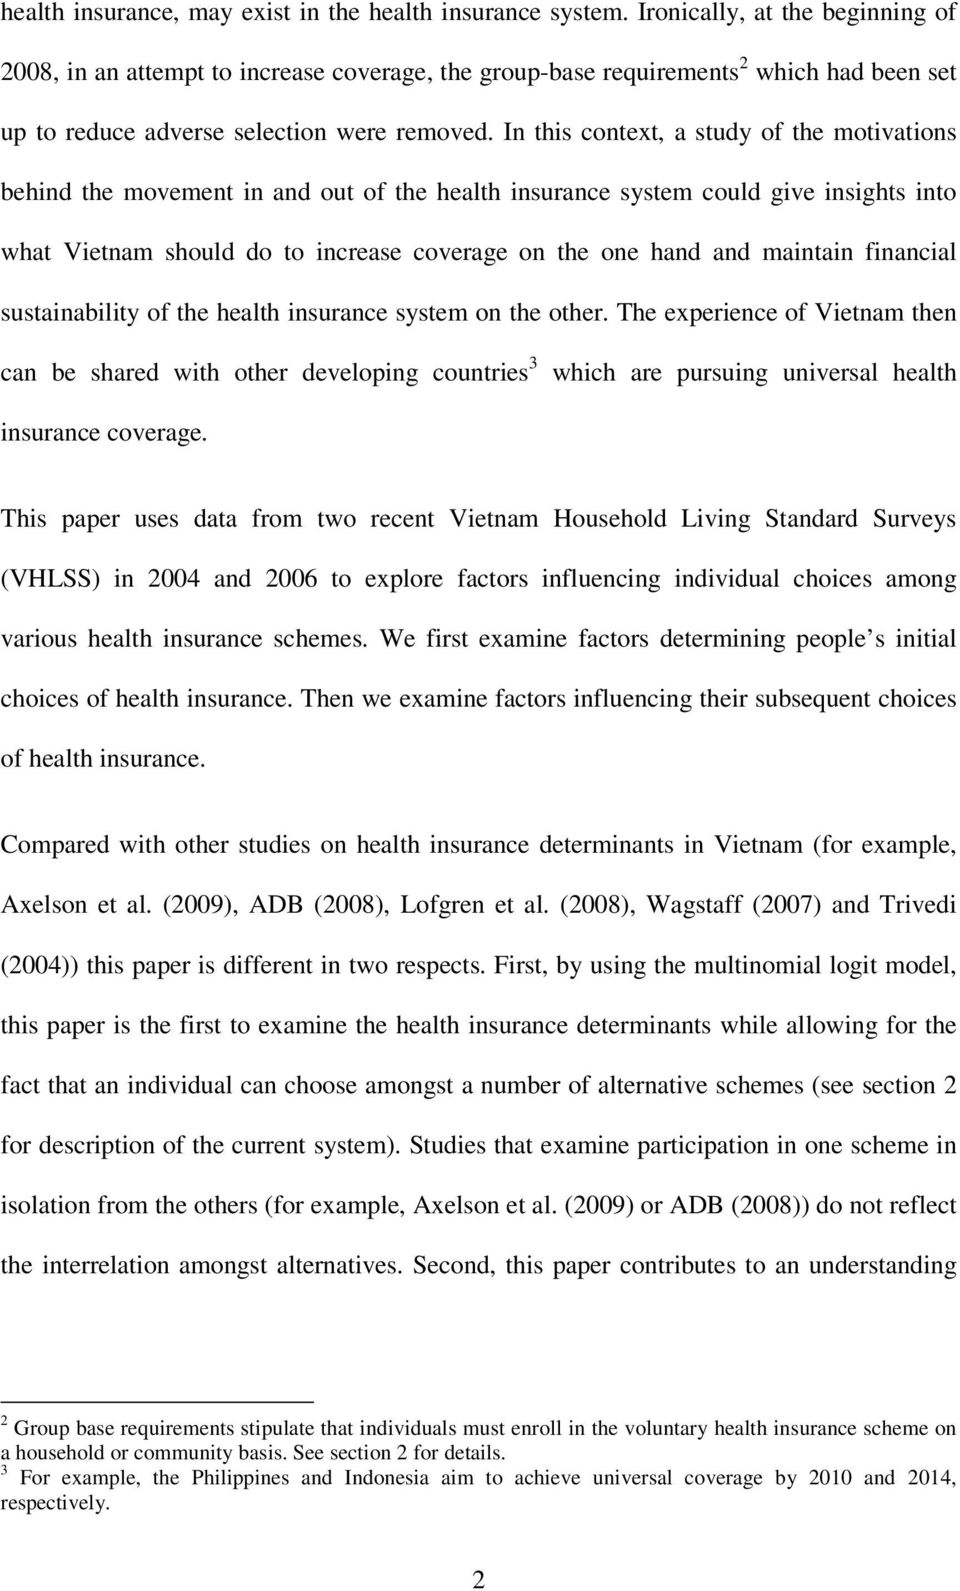 In this context, a study of the motivations behind the movement in and out of the health insurance system could give insights into what Vietnam should do to increase coverage on the one hand and